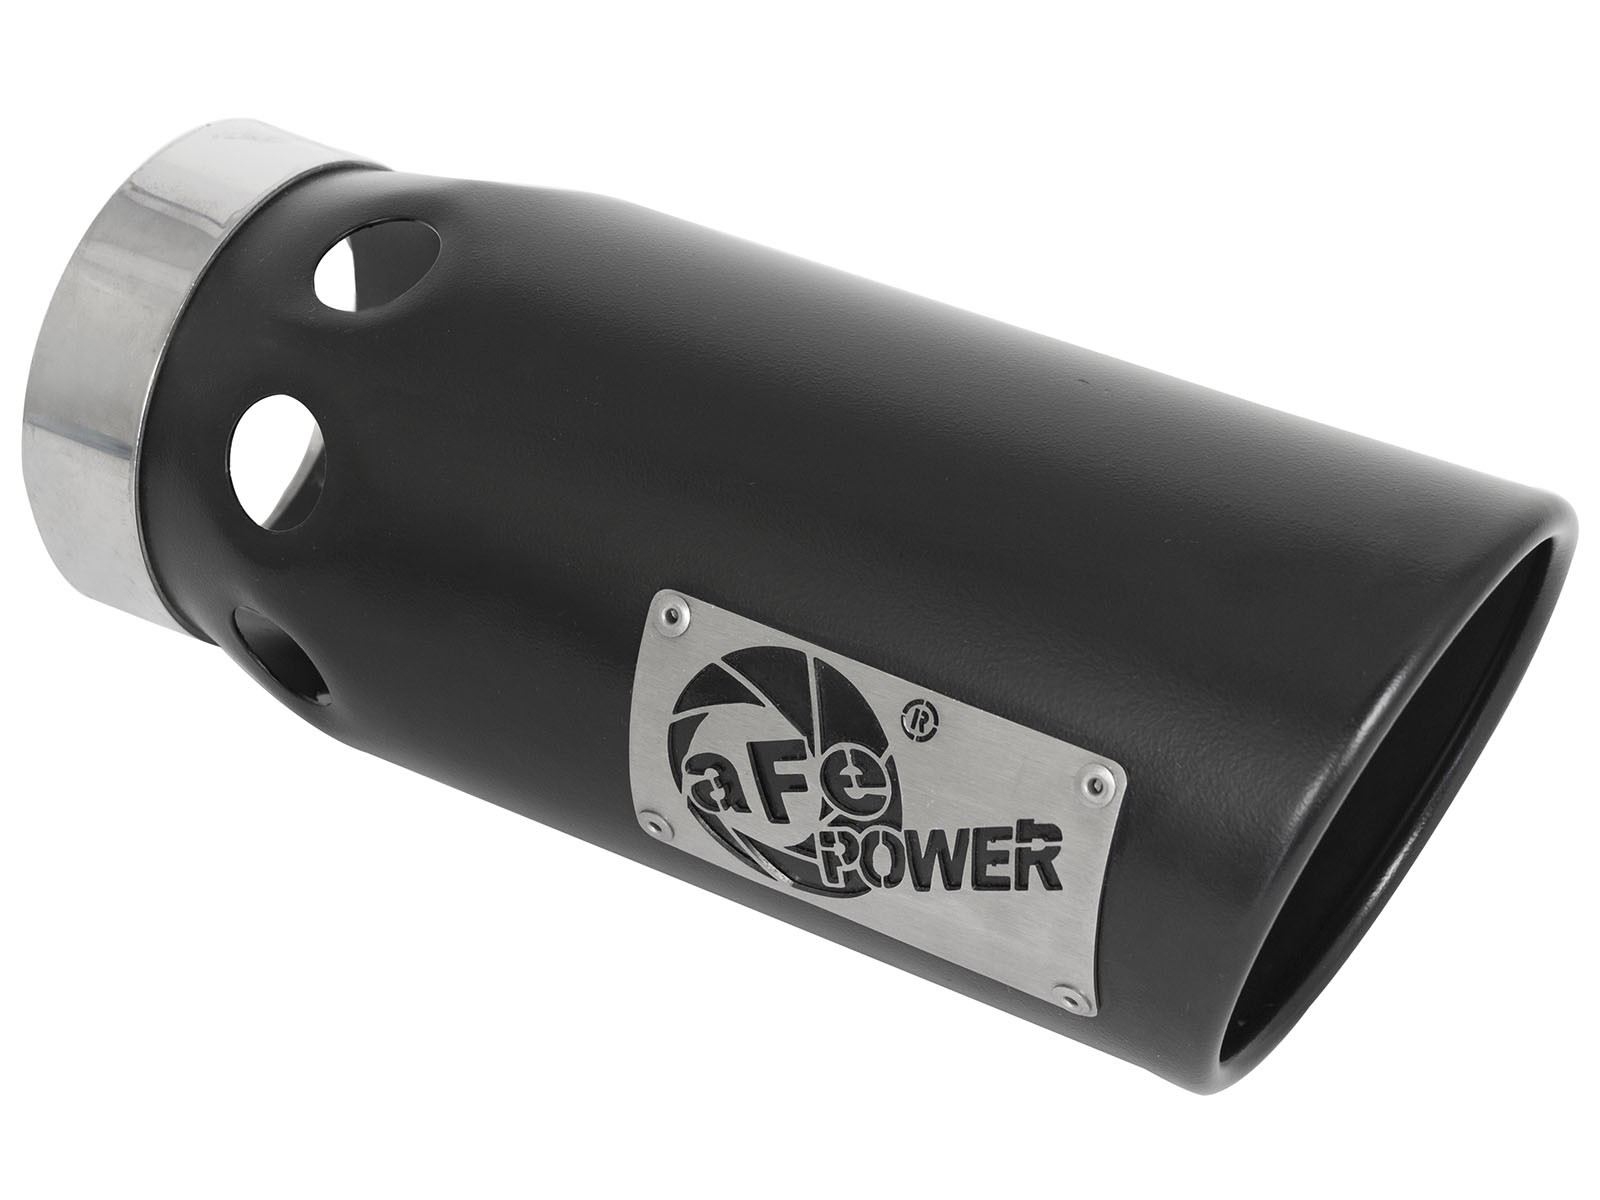 """aFe POWER 49T50601-B161 MACH Force-Xp 5"""" 409 Stainless Steel Intercooled Exhaust Tip"""